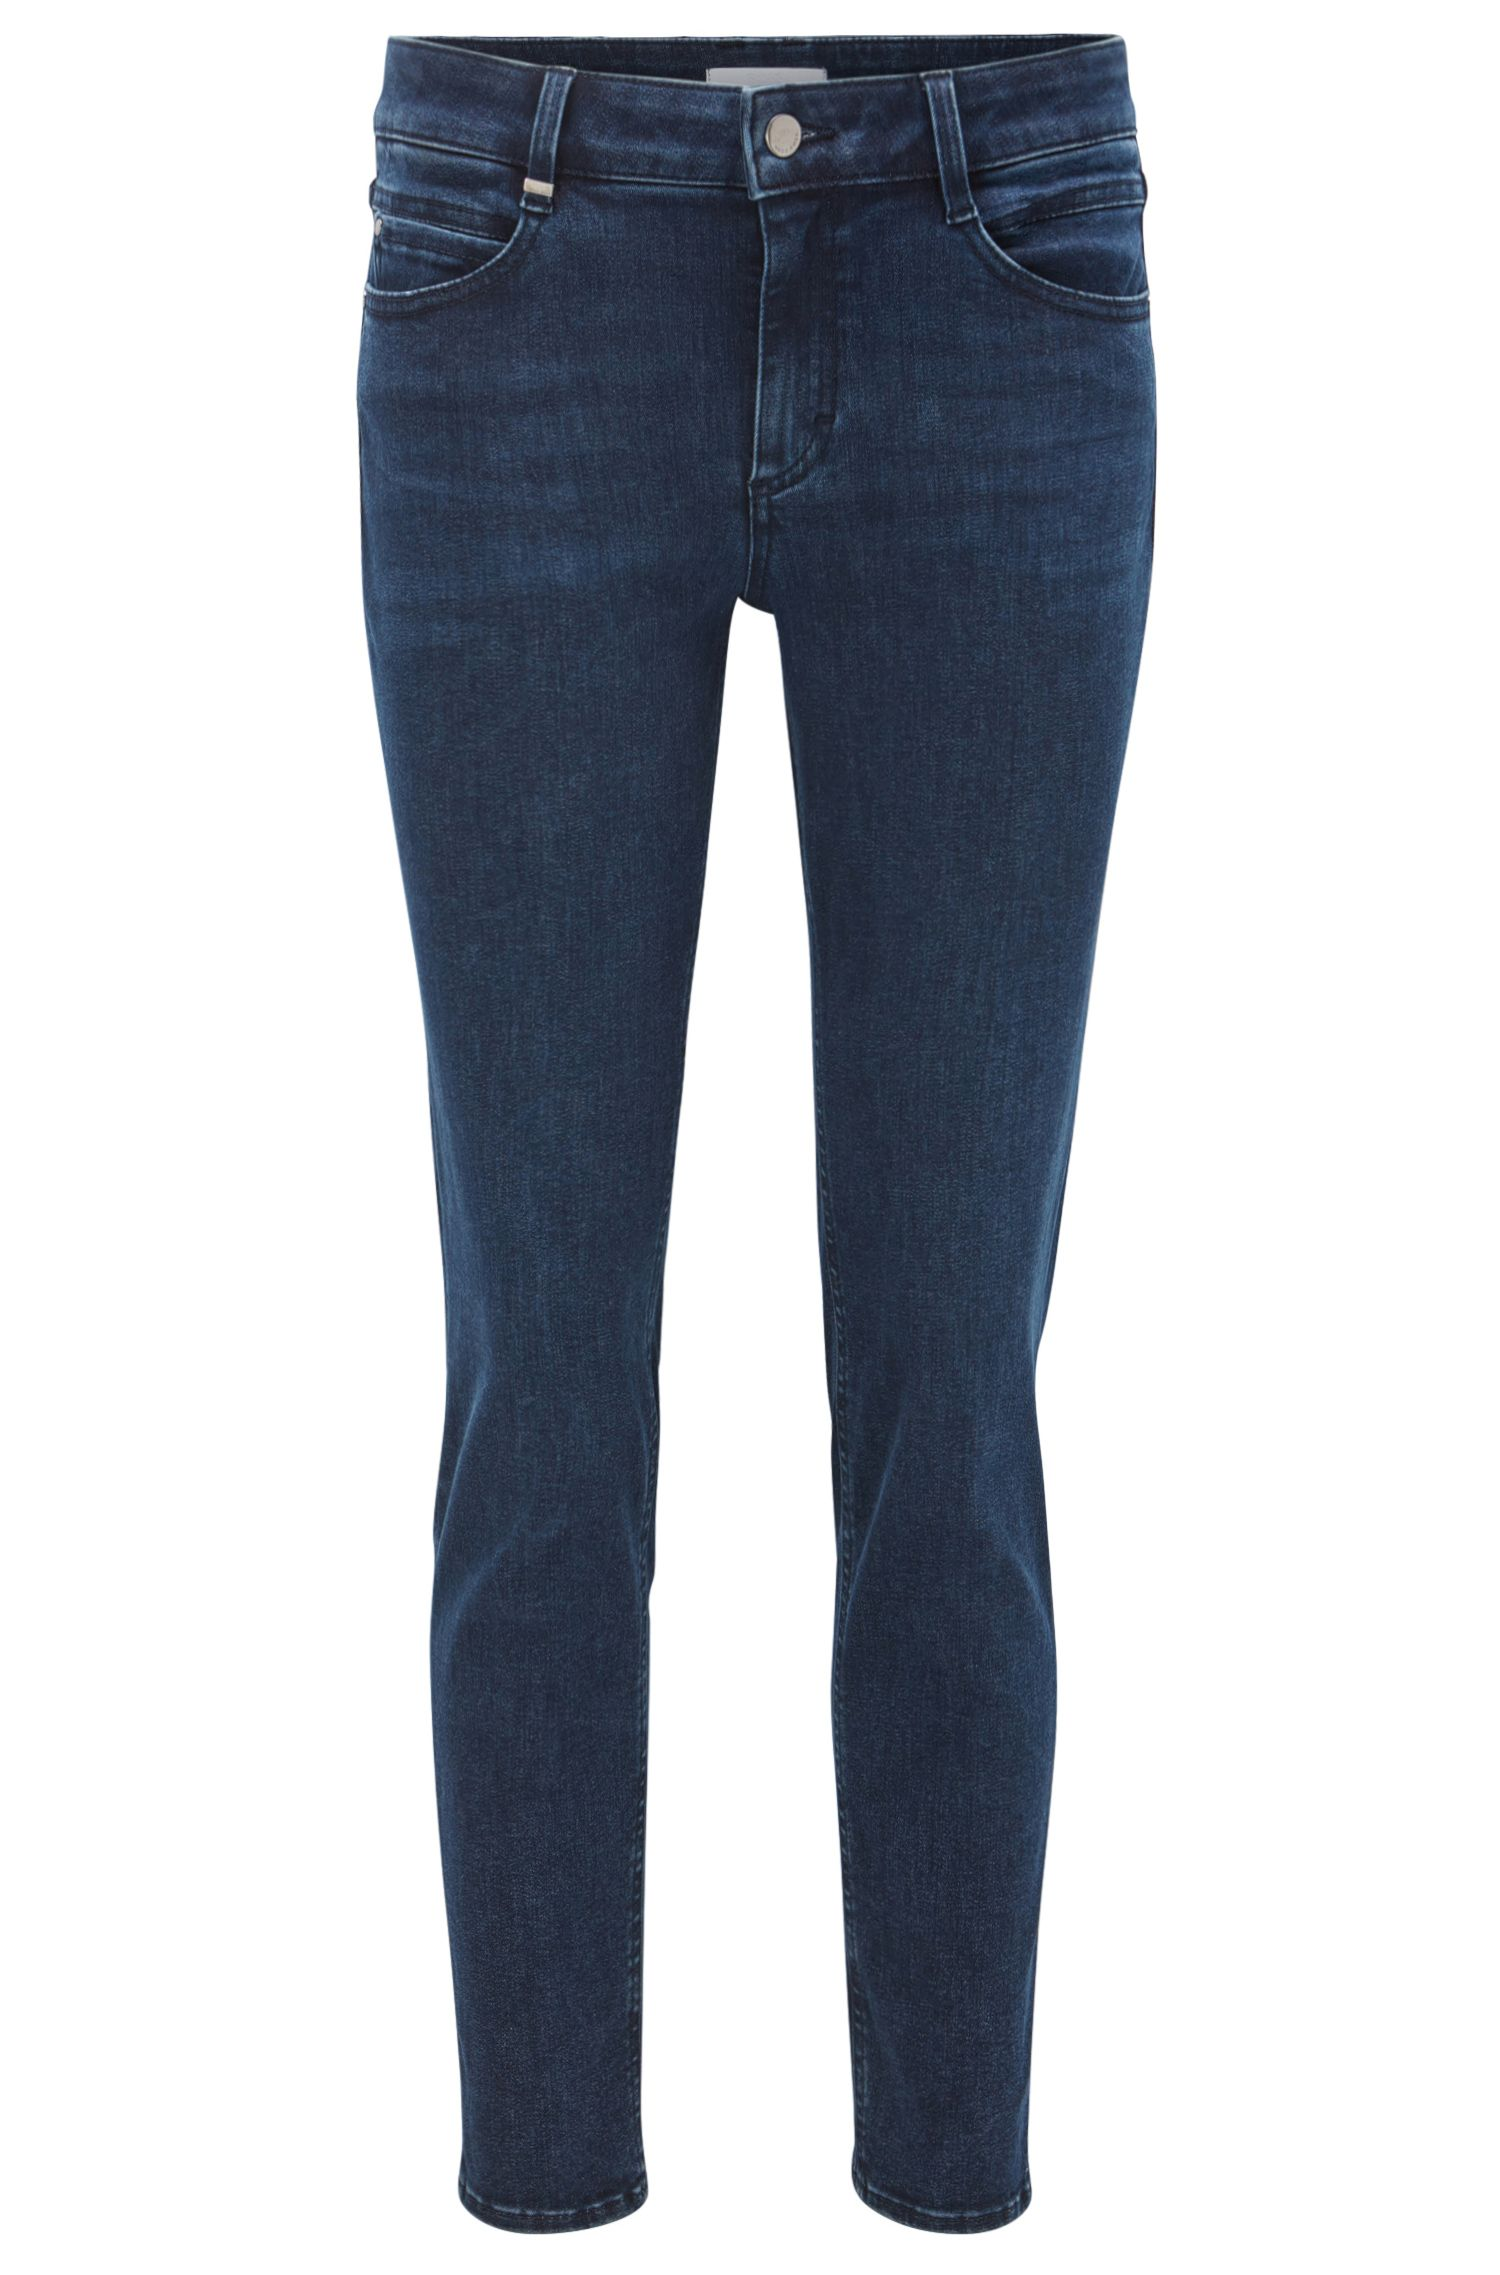 Jeans regular fit in denim elasticizzato lavorato